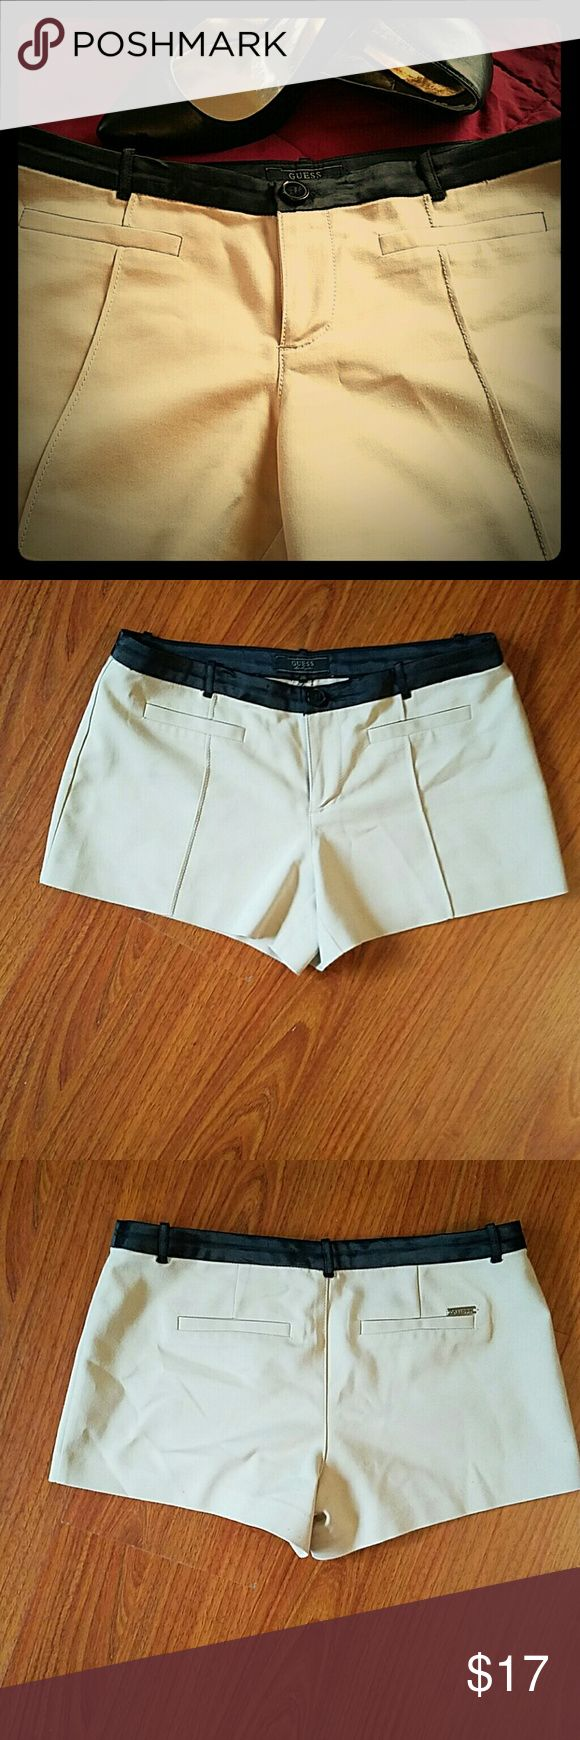 Guess shorts. Cute stretchy beige shorts with black trim around the waist. 49% cotton 48% polyester 3% spandex. Guess Shorts